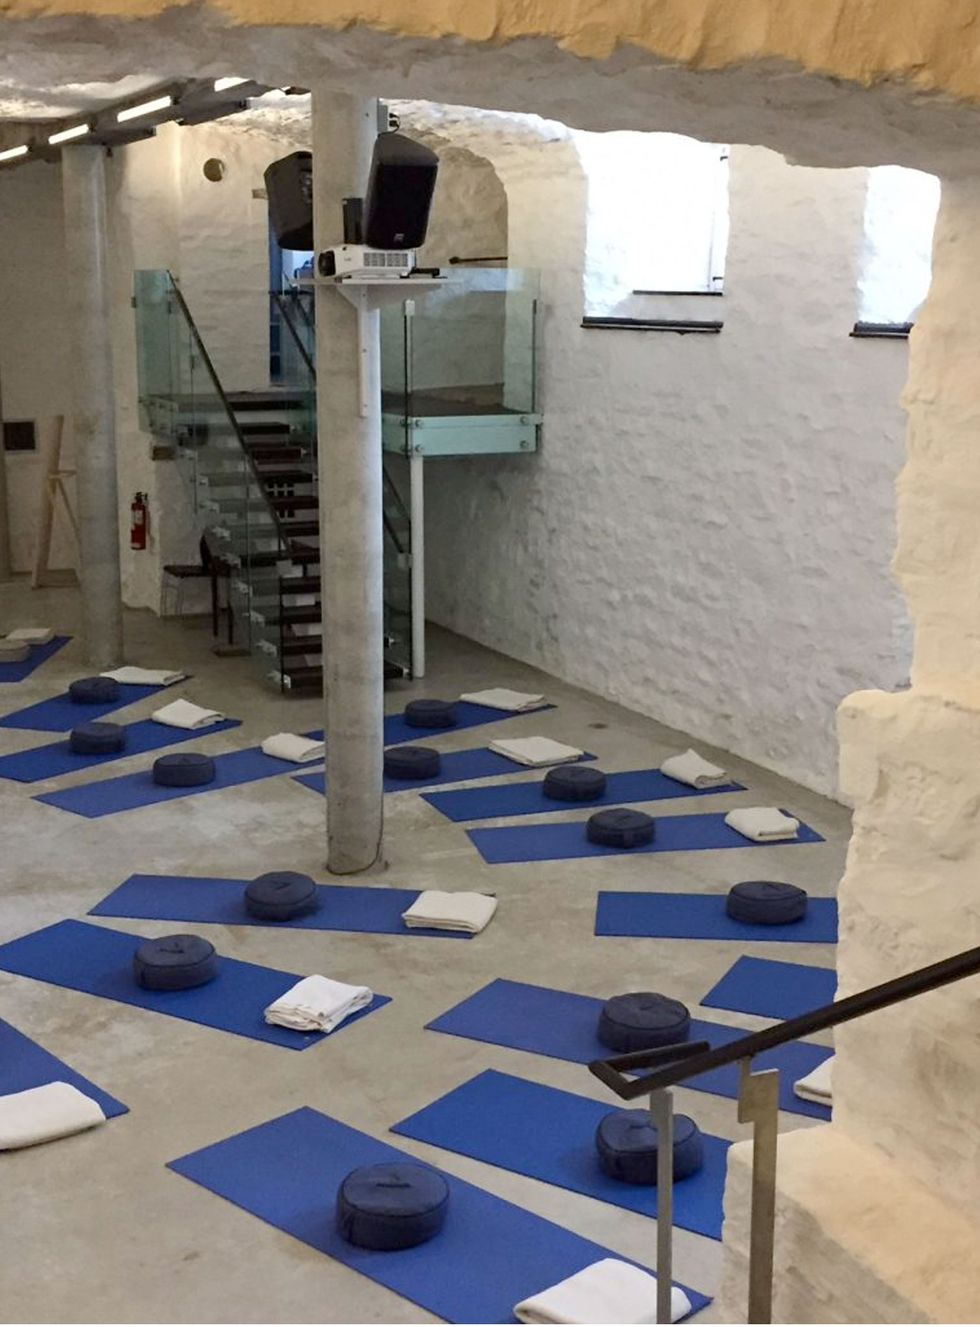 Wellness Travel: My Relaxing Visit to Le Monastère Des Augustines